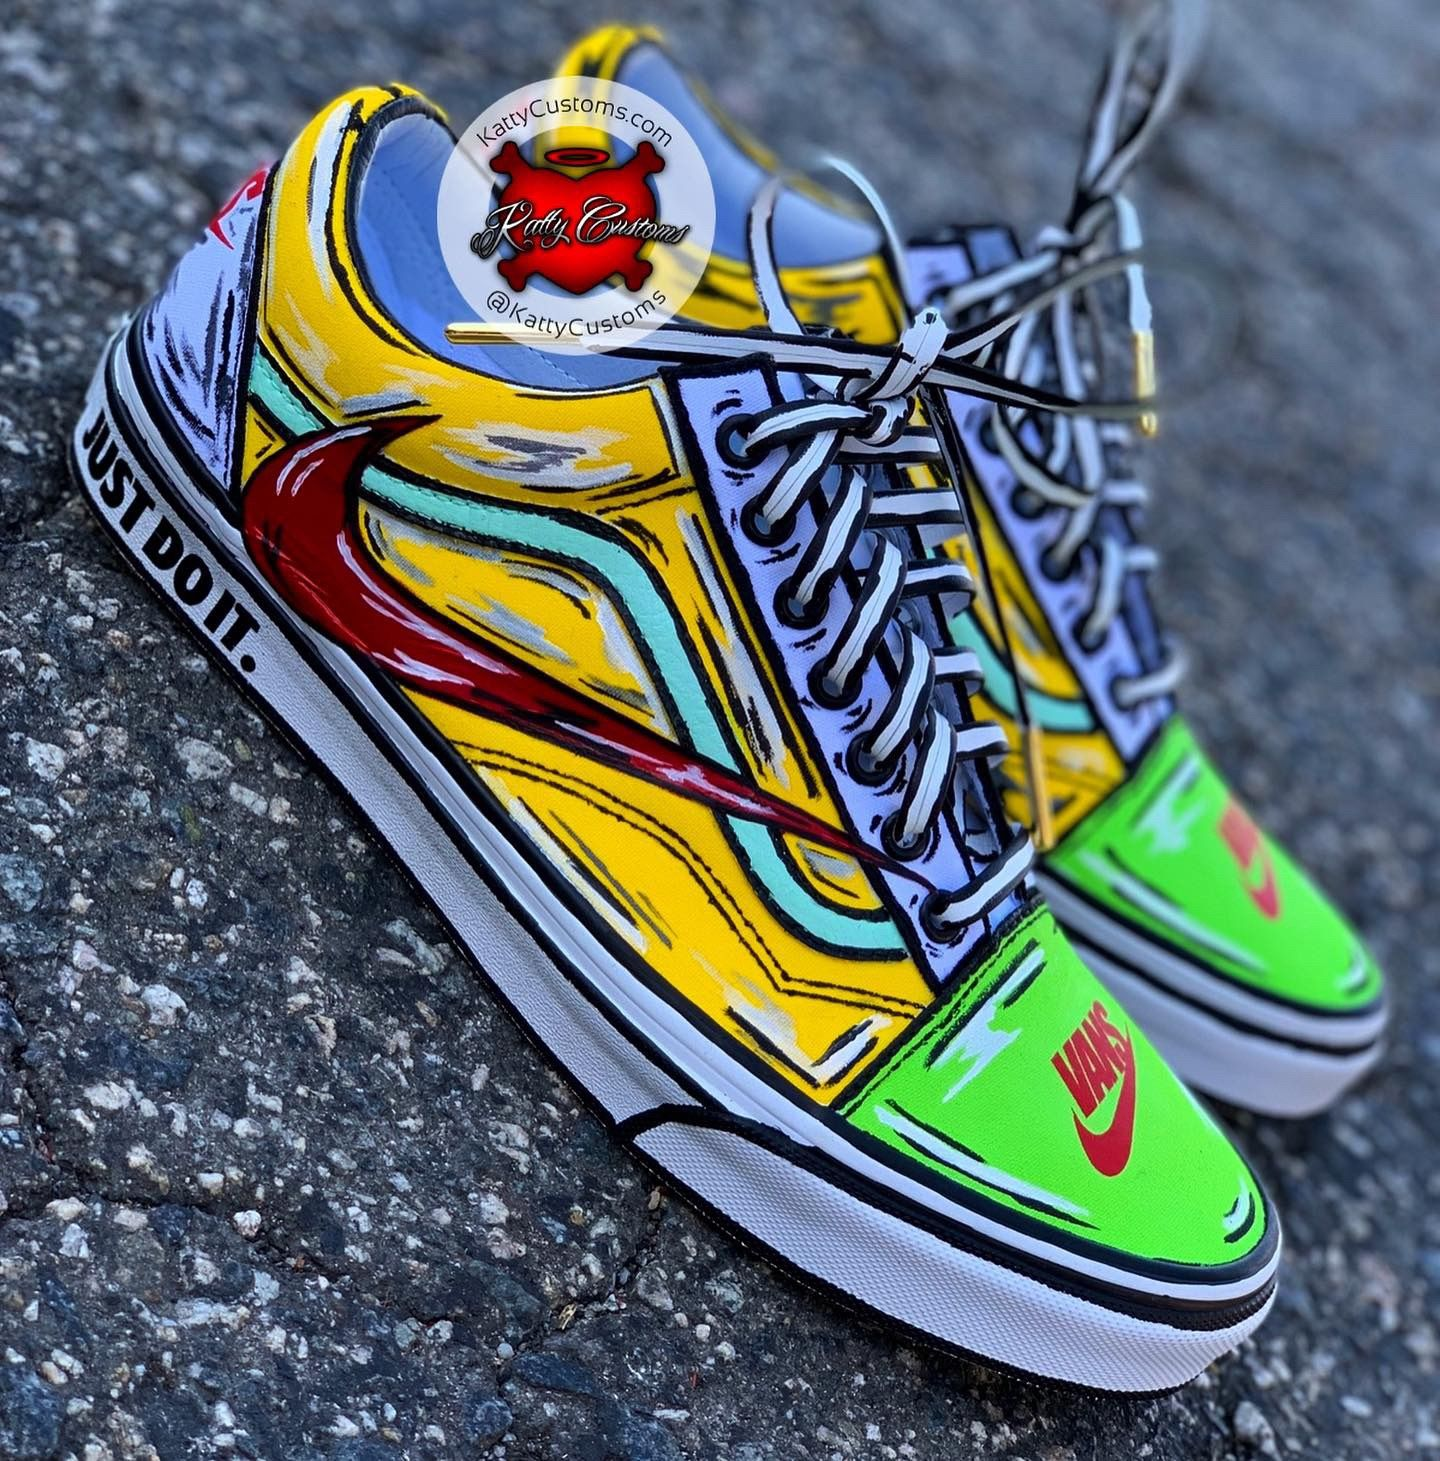 Custom Cartoon Nike X Vans Collab In 2020 With Images Custom